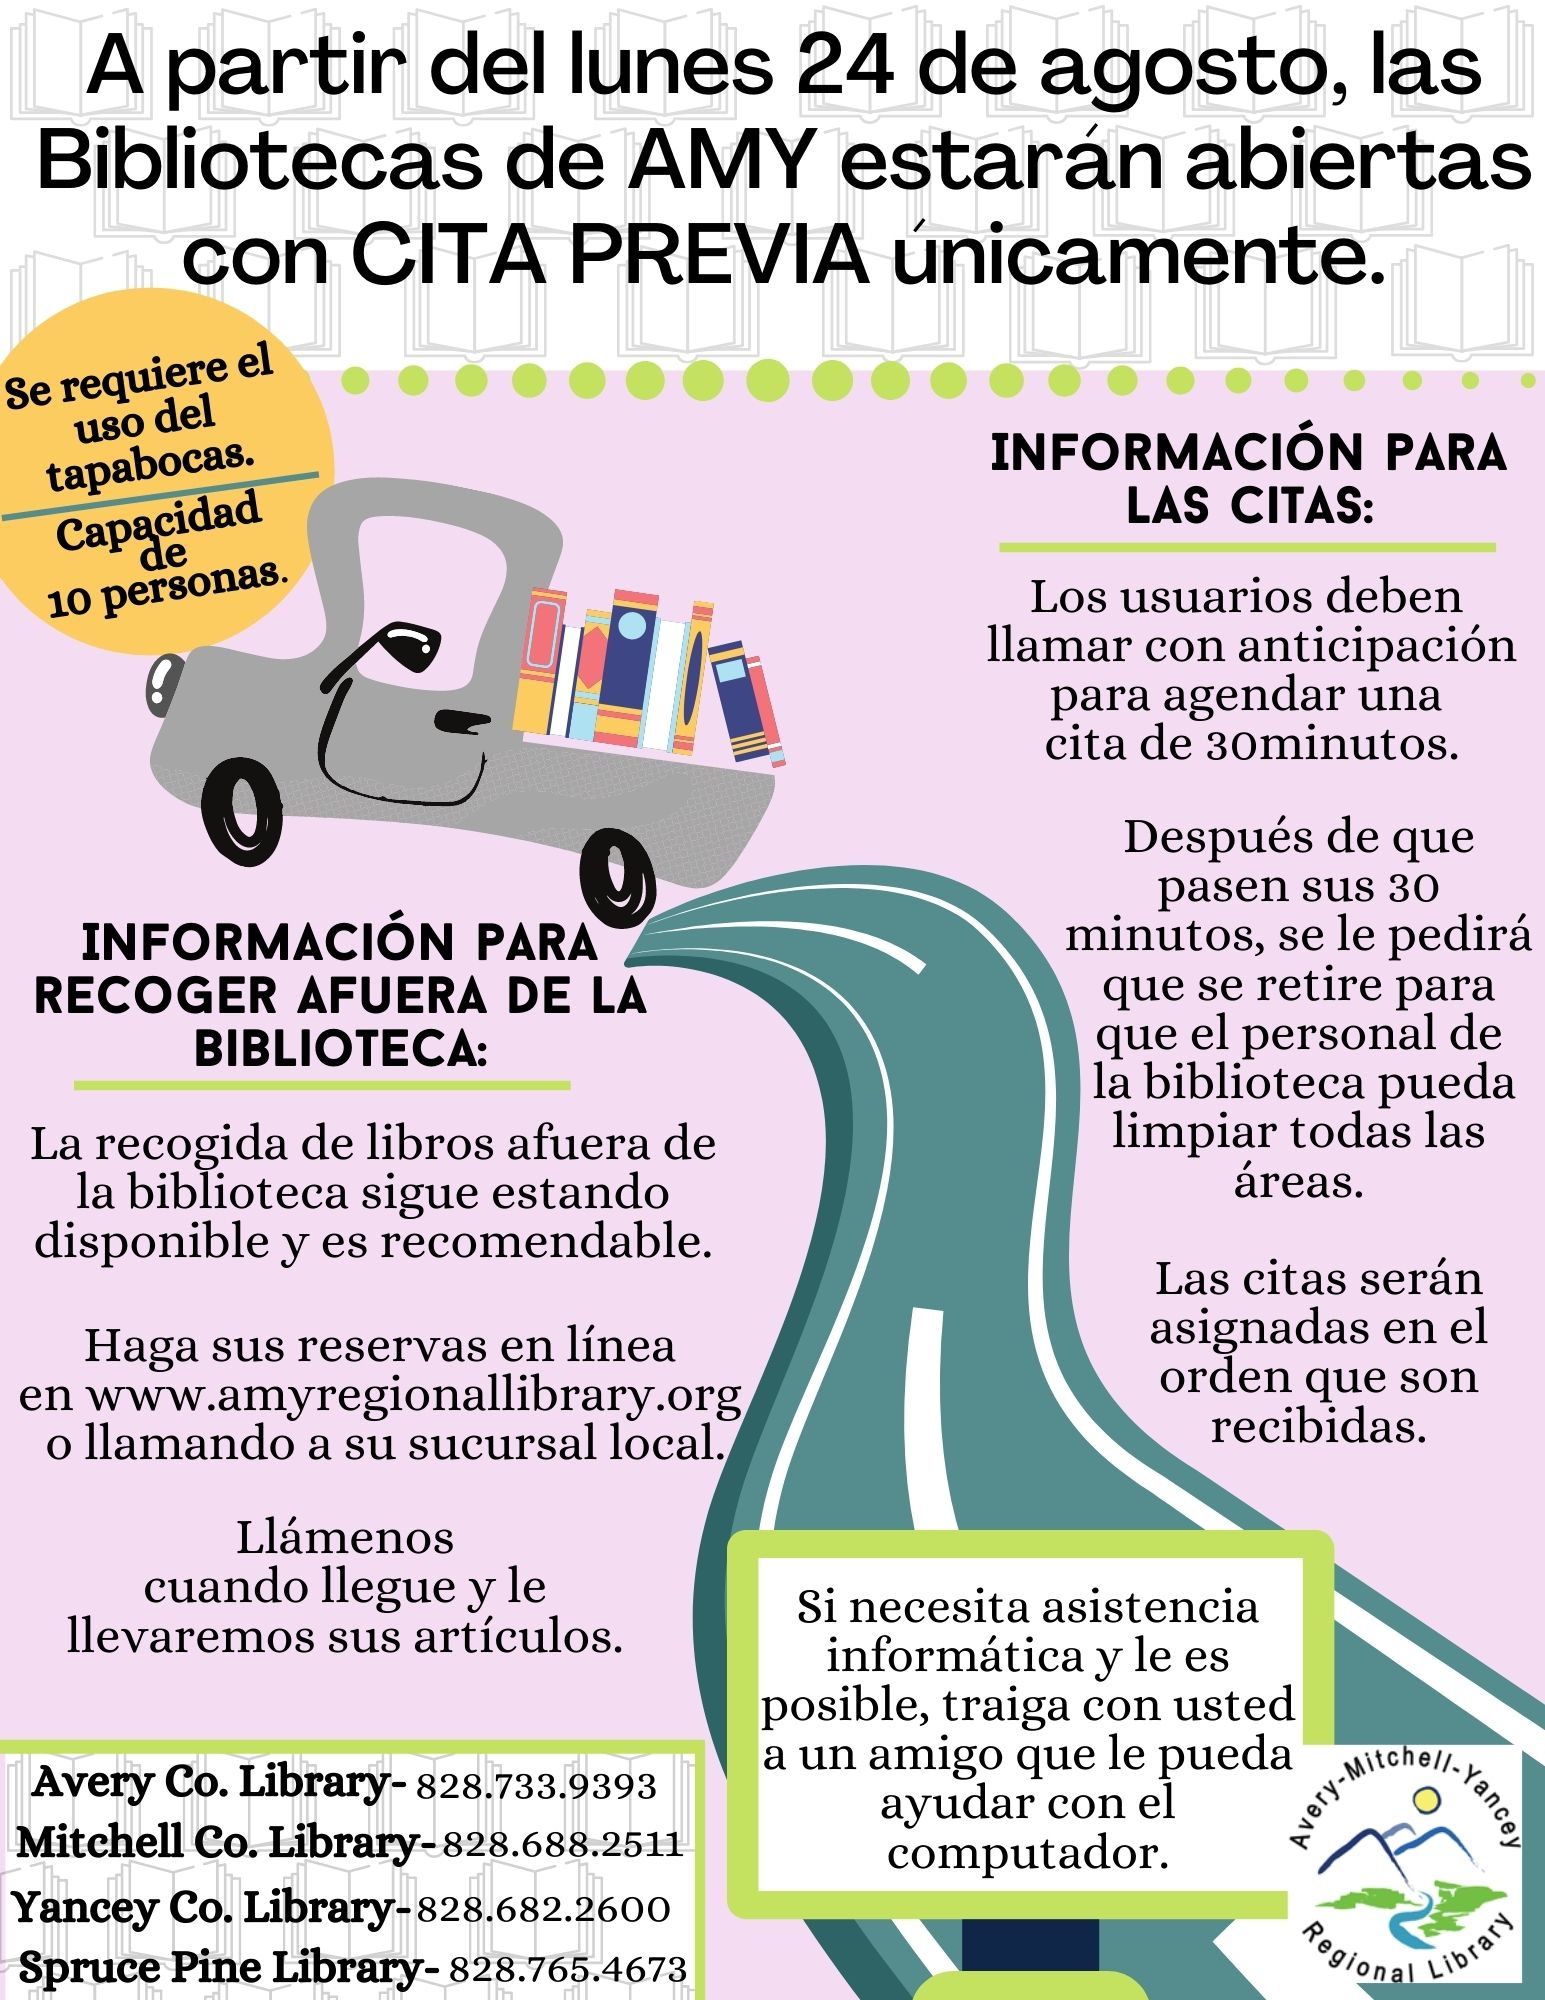 All Libraries are open for appointment only. (flyer in Spanish)